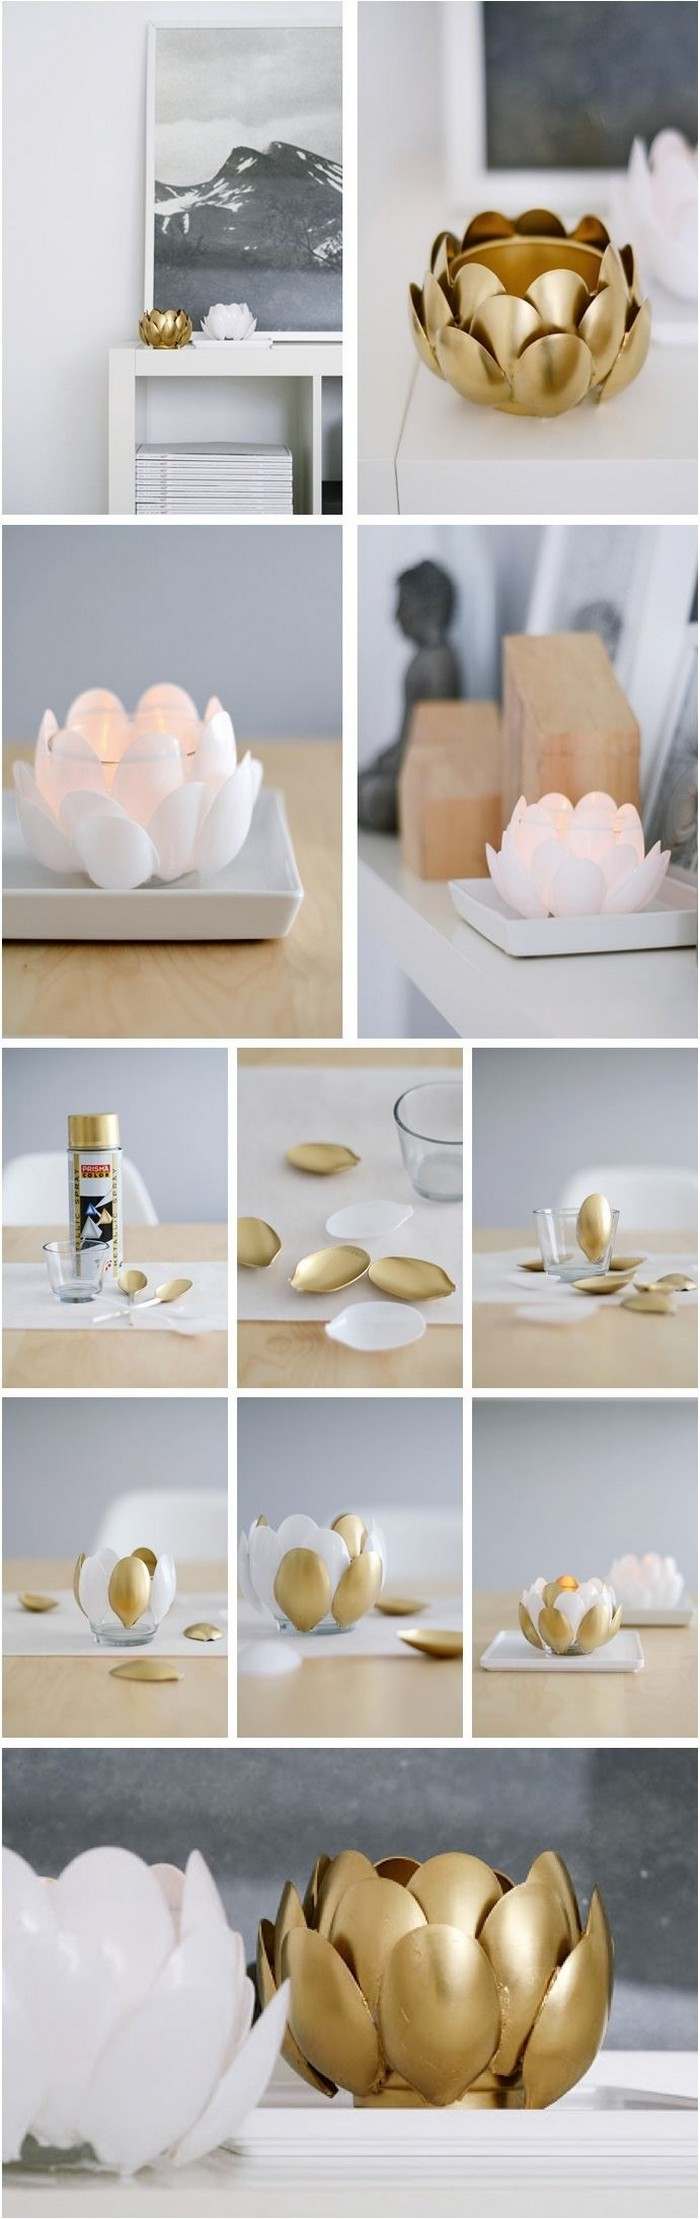 DIY Water Lilies DIY Home Décor Crafts To Make Your Home Beautiful